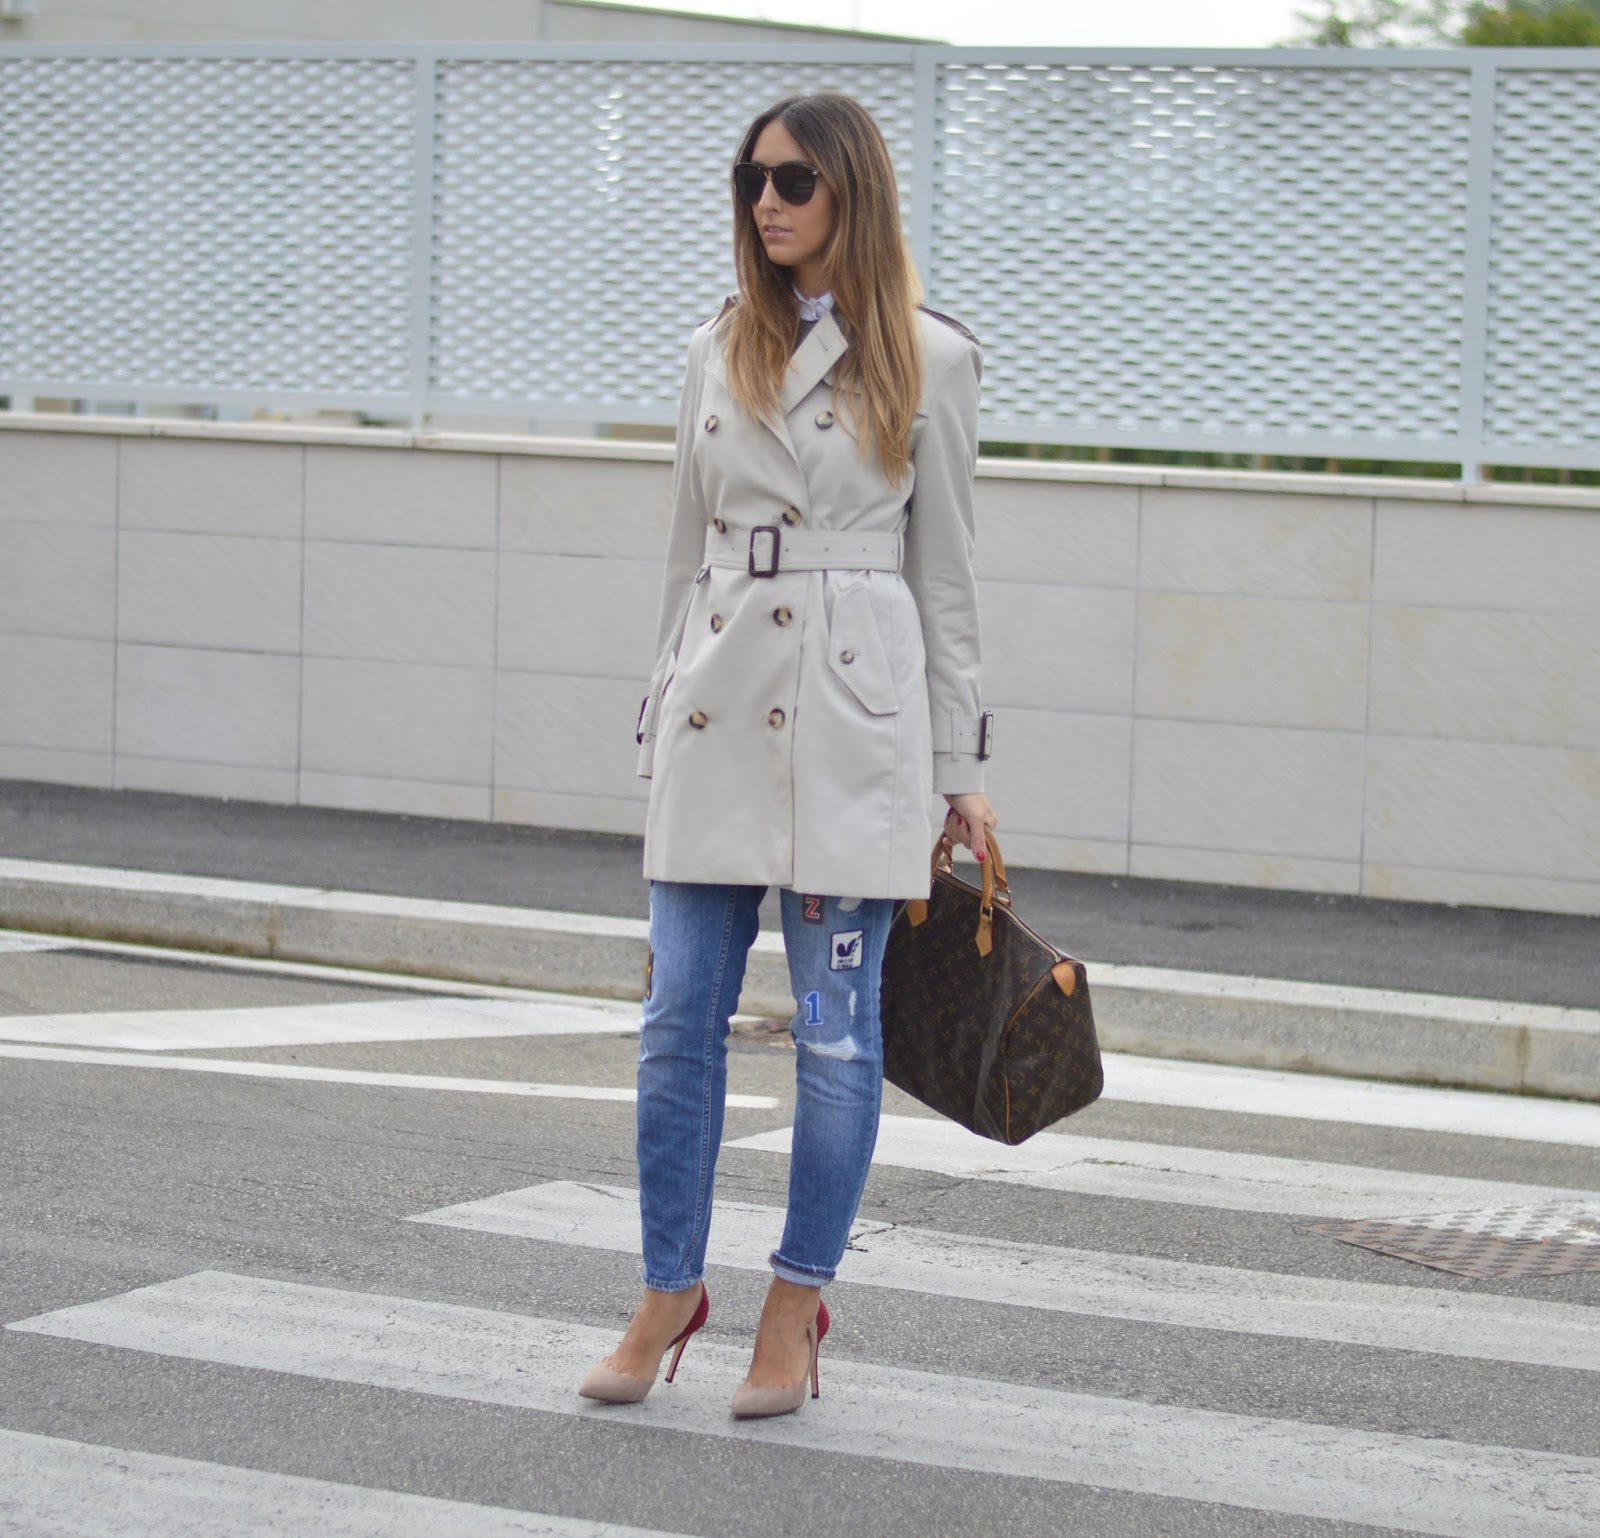 burberry trench, burberry trenchcoat, louis vuitton speedy bag, louis vuitton bag, bauletto louis vuitton, louis vuitton speedy 40 bag, dolce & gabbana sunglasses, zara jeans, semilla shoes, semilla pumps, fashion blogger, top fashion blogger, fashion blogger italiane, fashion blogger firenze, fashion blogger italiane, burberry trench street style, burberry trench coat street style